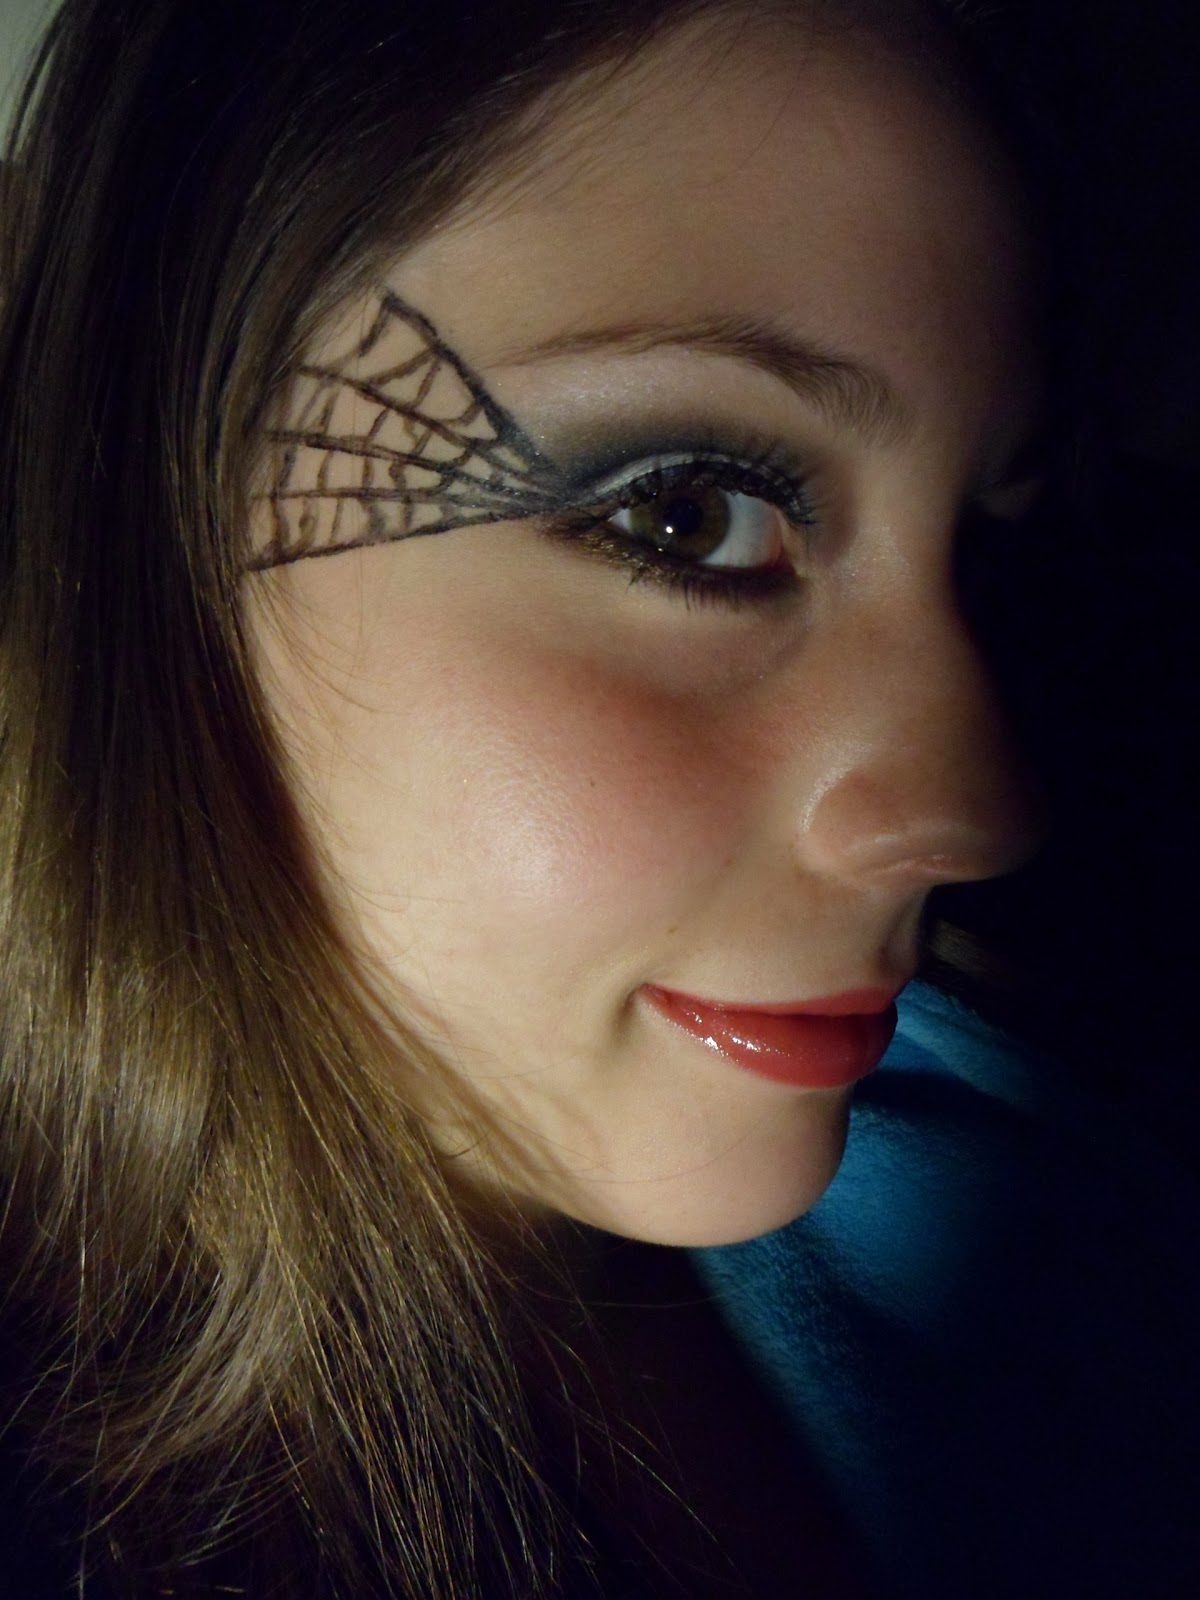 Luhivy's Favorite Things: Halloween Makeup : Spider Web